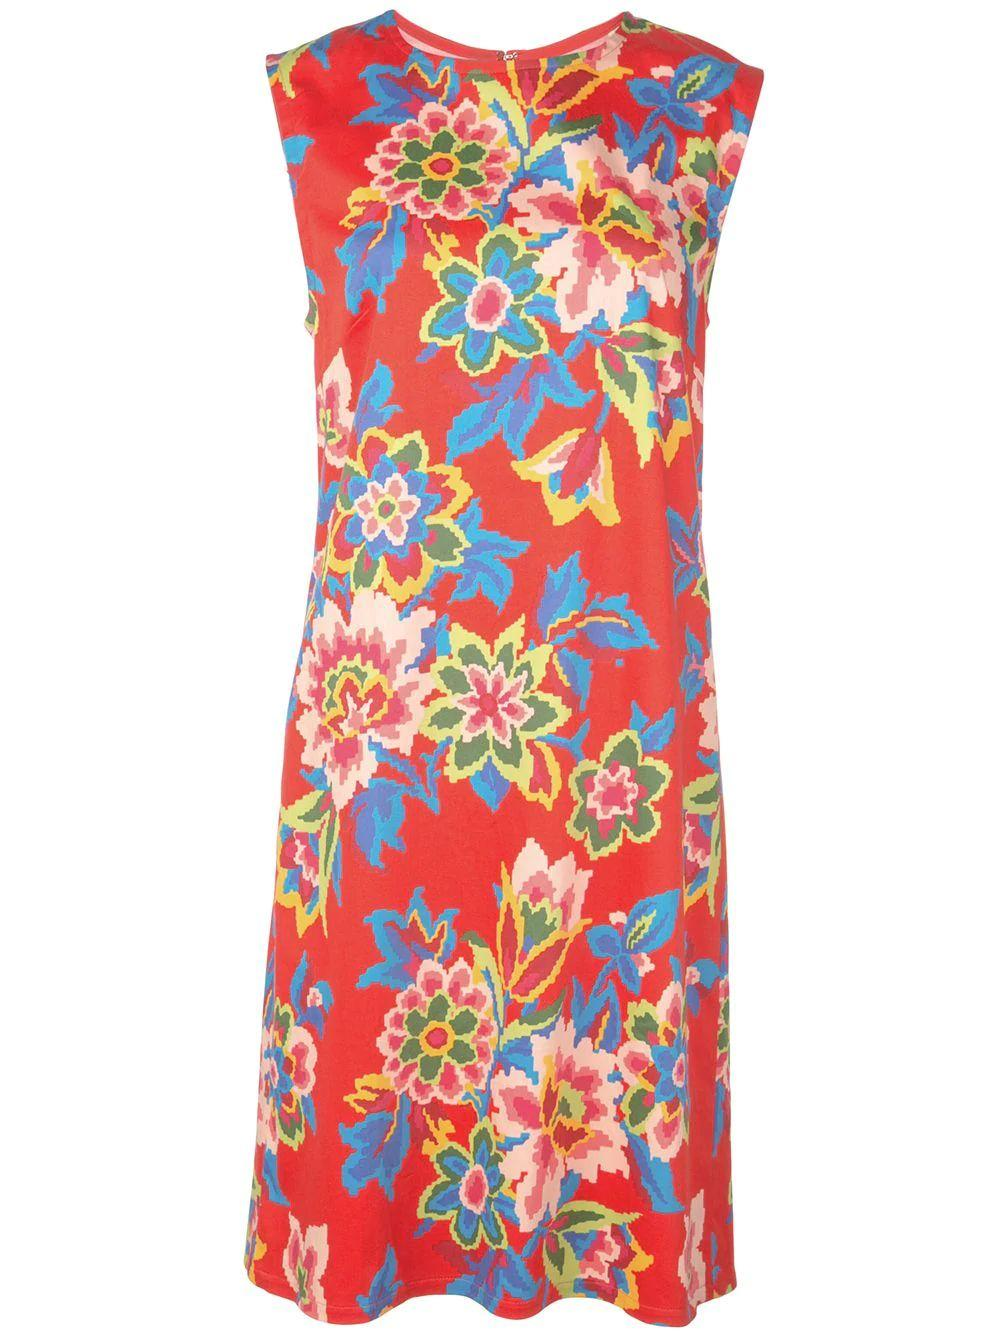 Sleeve Less Pixel Floral Print Shift Dress